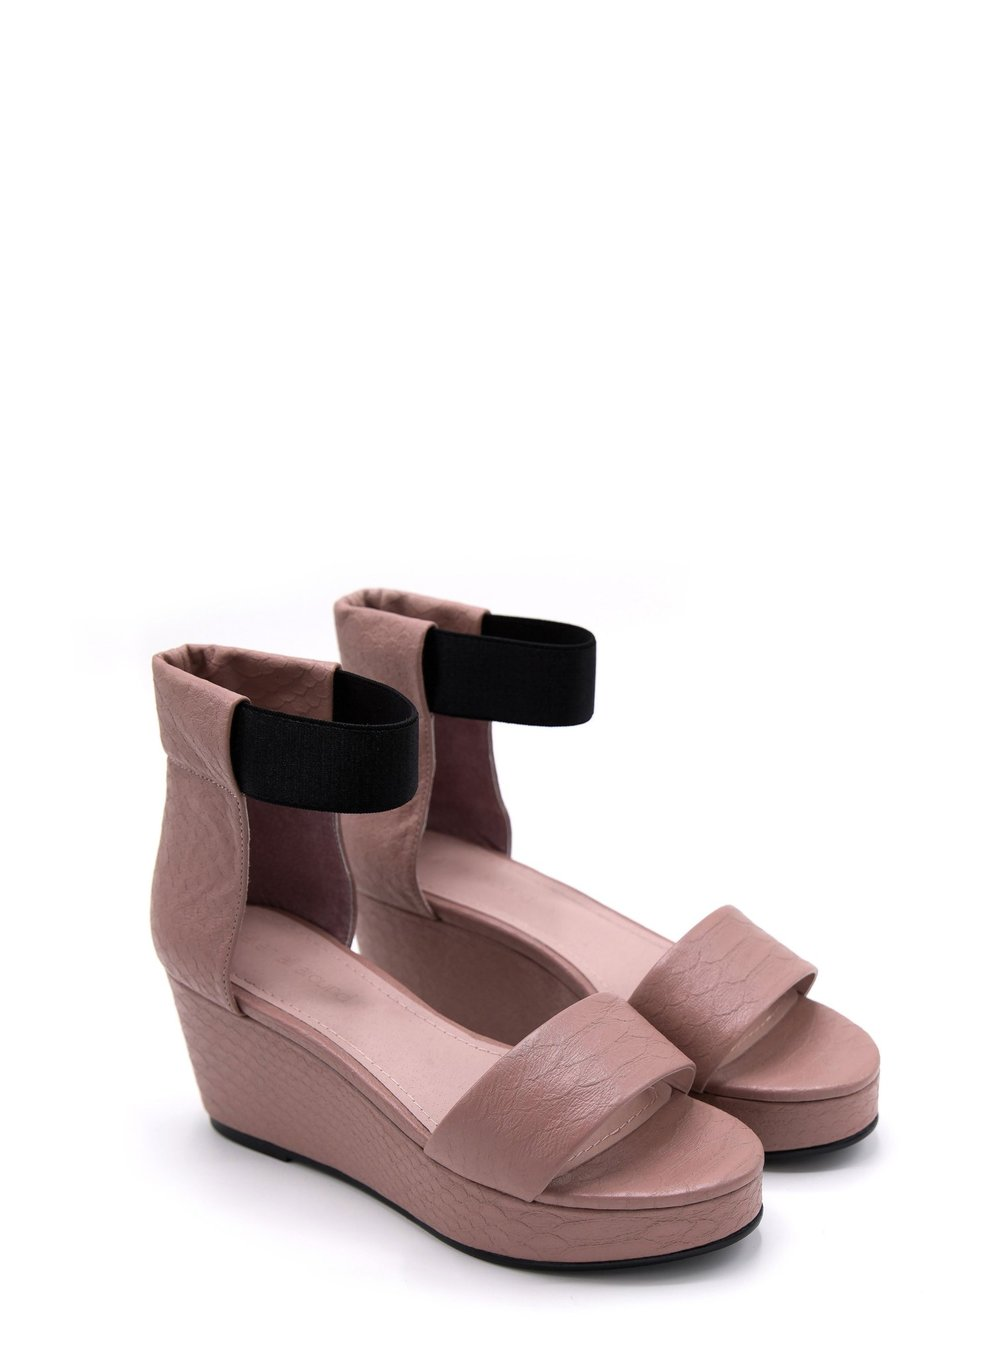 seven all around dusty pink sandals.jpg